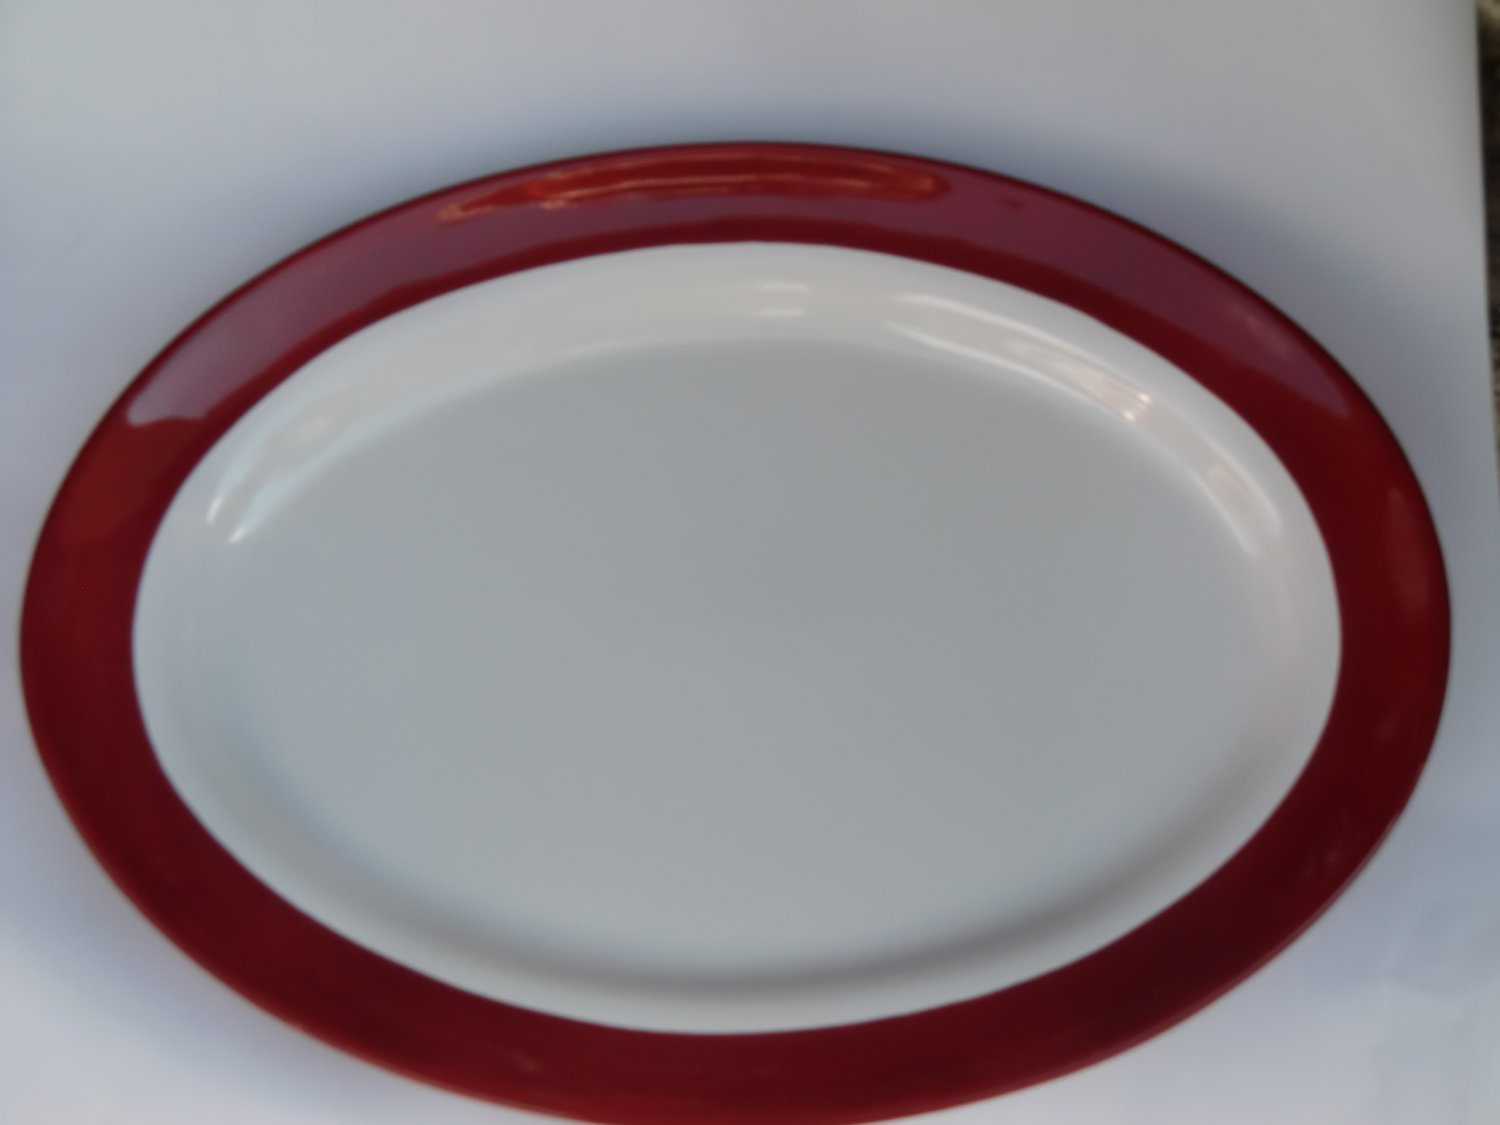 Pampered Chef Simple Additions Like New Large Oval Serving Platter, White w/ Cranberry Accent #2059